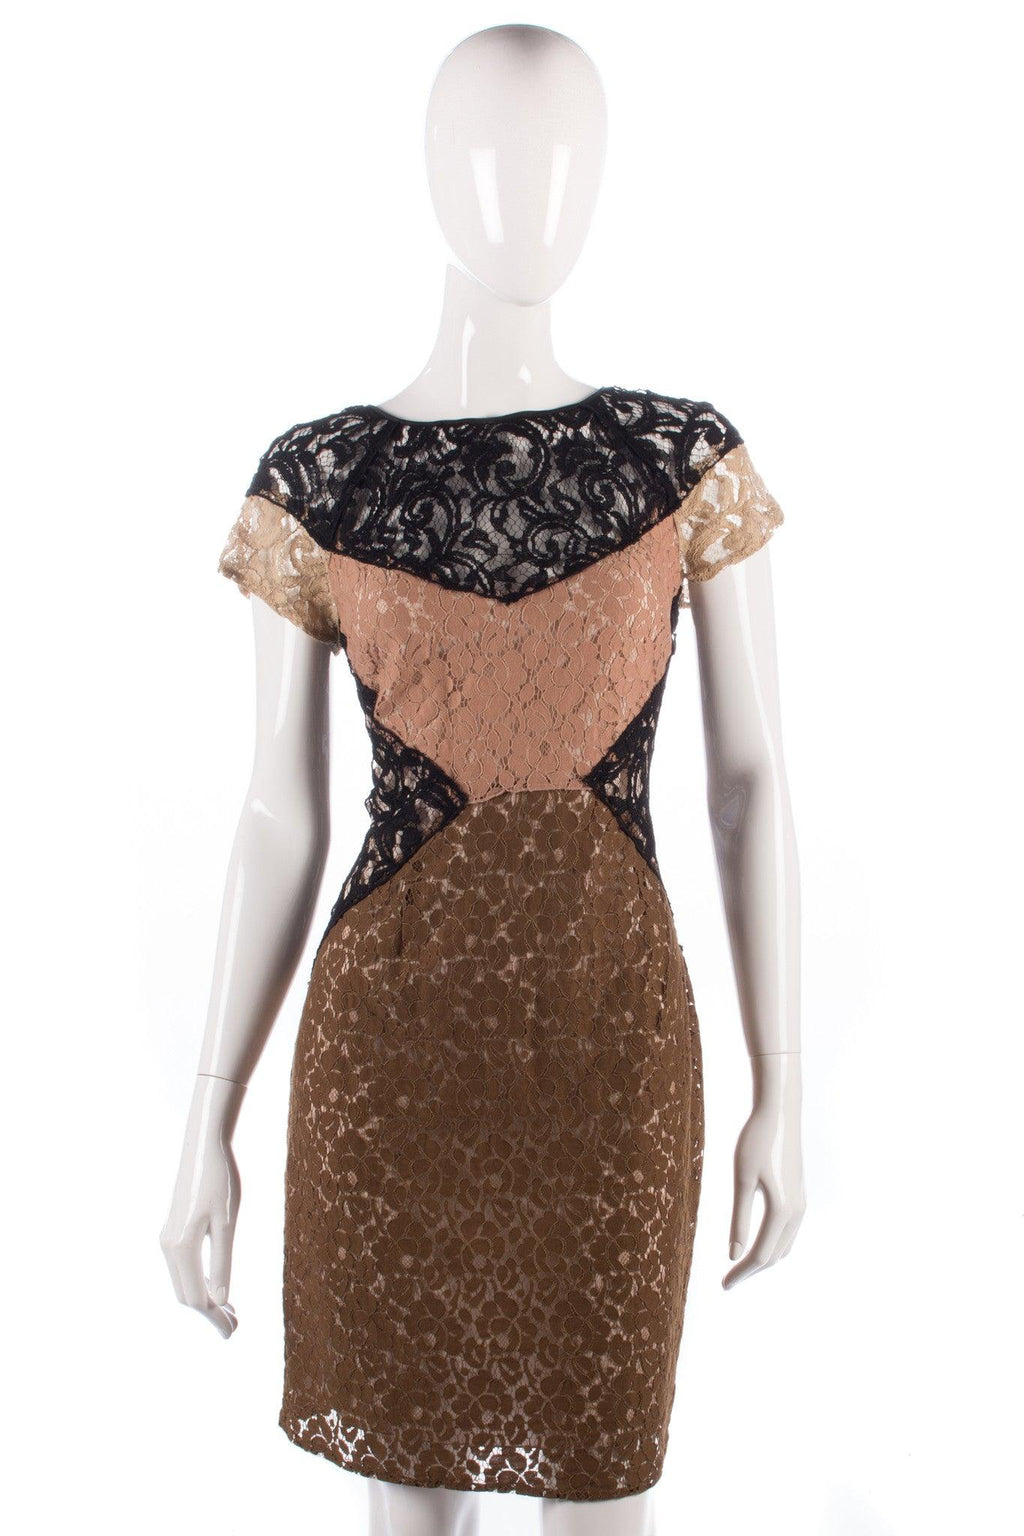 Hoss iItroqia lace black cream and brown dress size 14